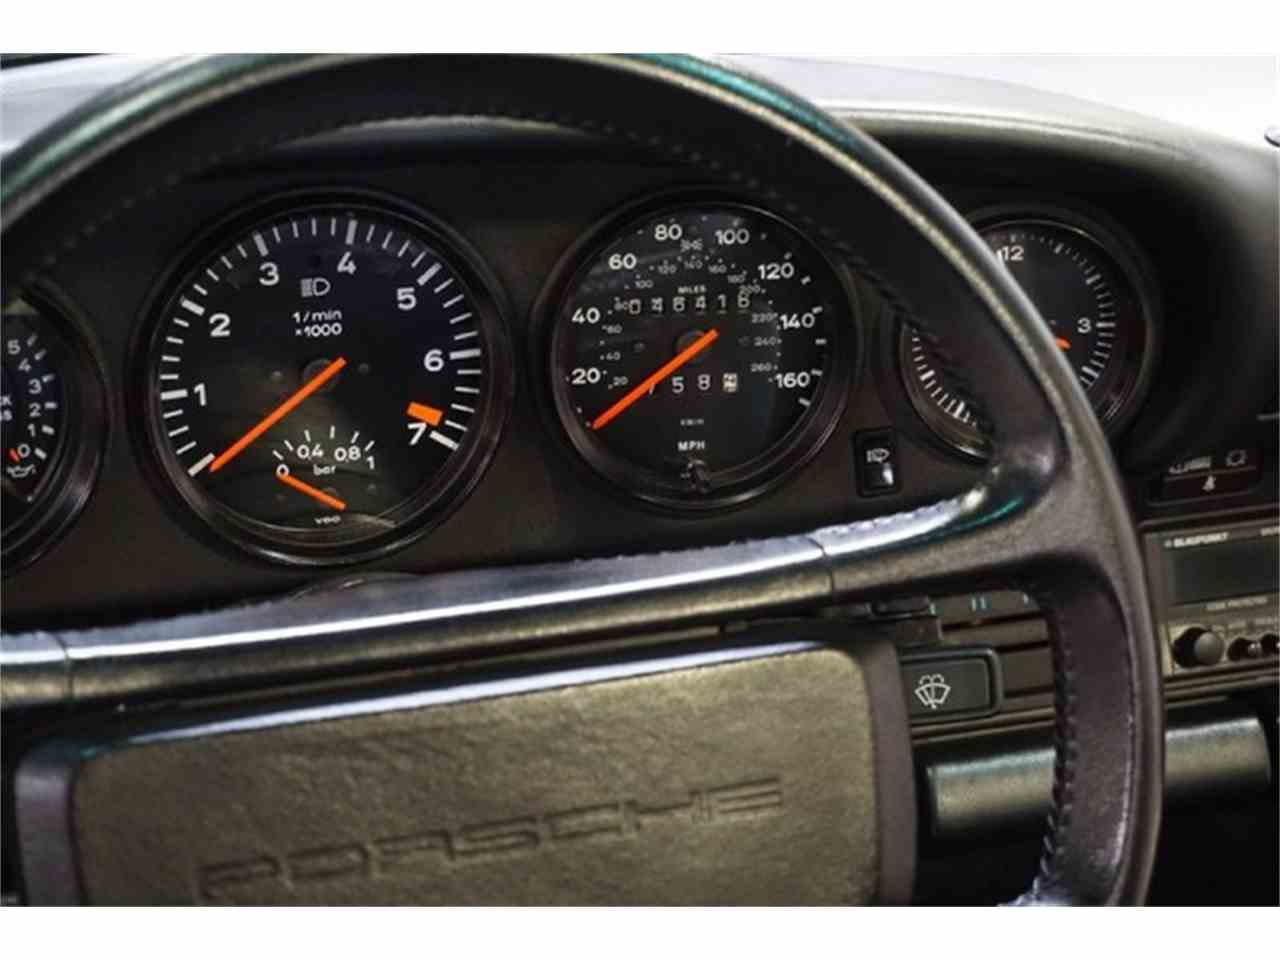 Large Picture of 1989 Porsche 911 Turbo - $144,990.00 - EVKF